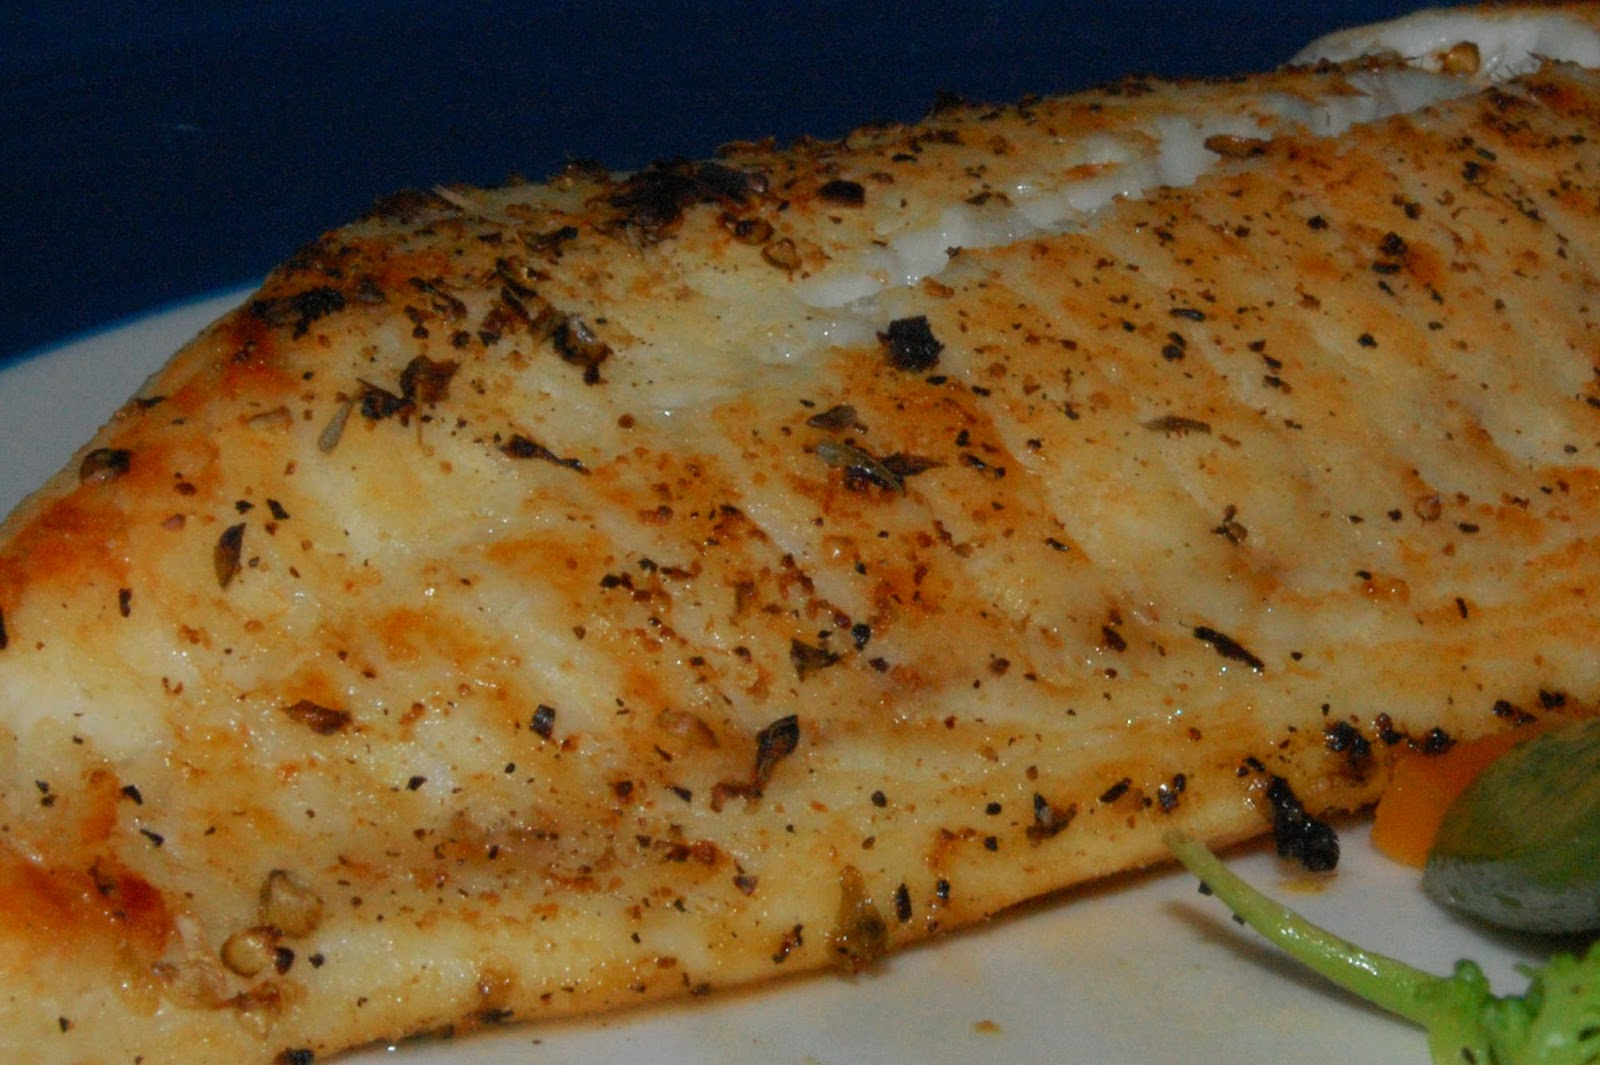 ... broiled tilapia recipe 20131218 202713 jpg parmesan broiled tilapia